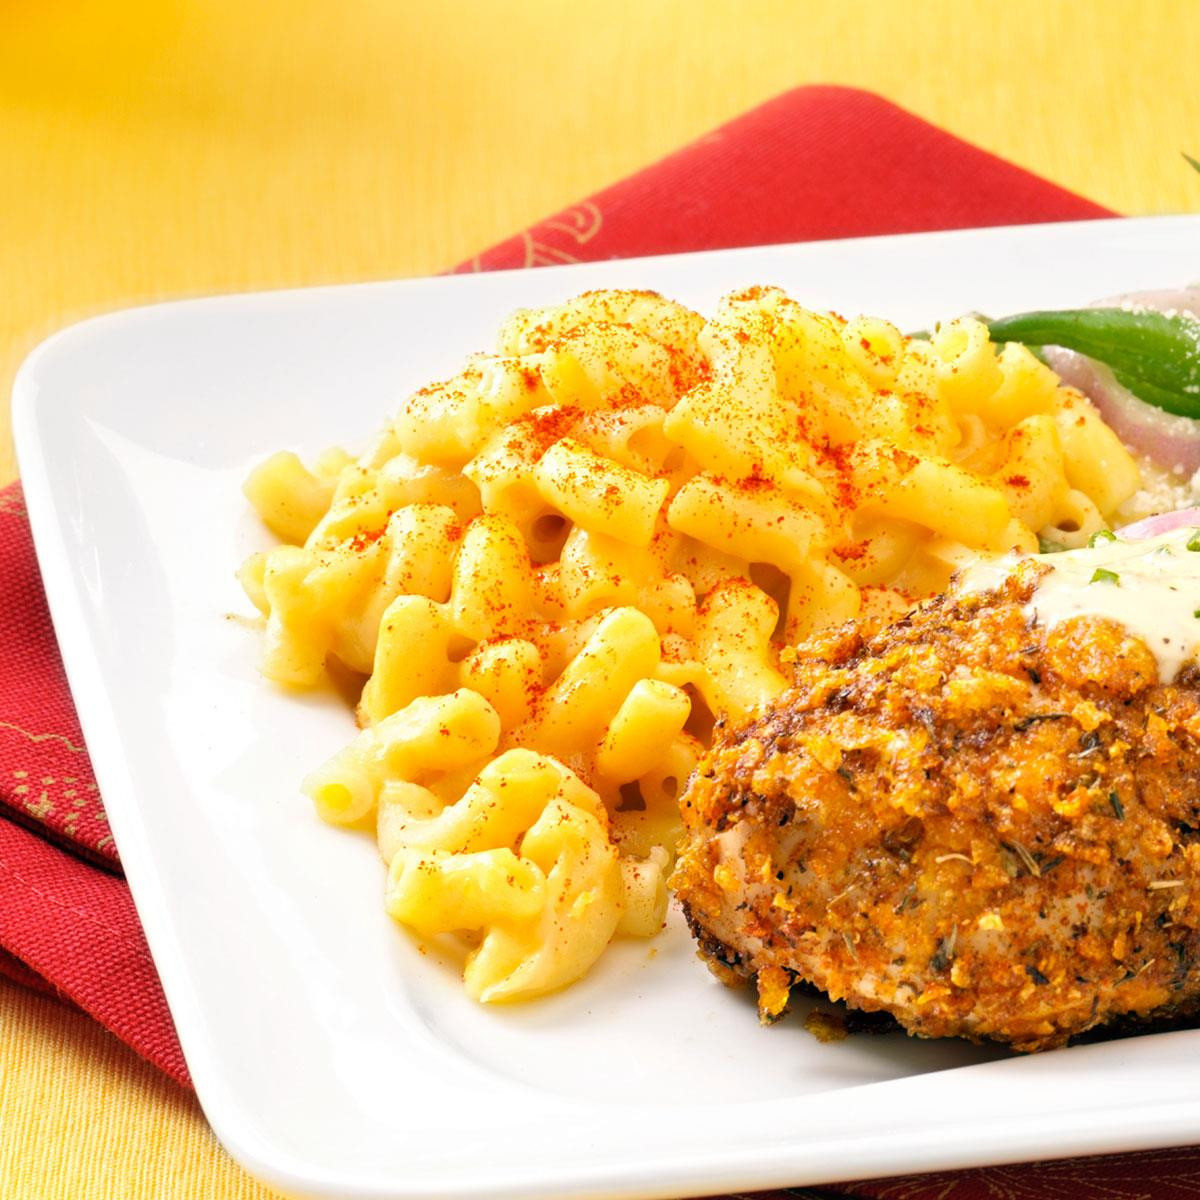 Low Fat Mac And Cheese Recipes  Low Fat Macaroni and Cheese Recipe